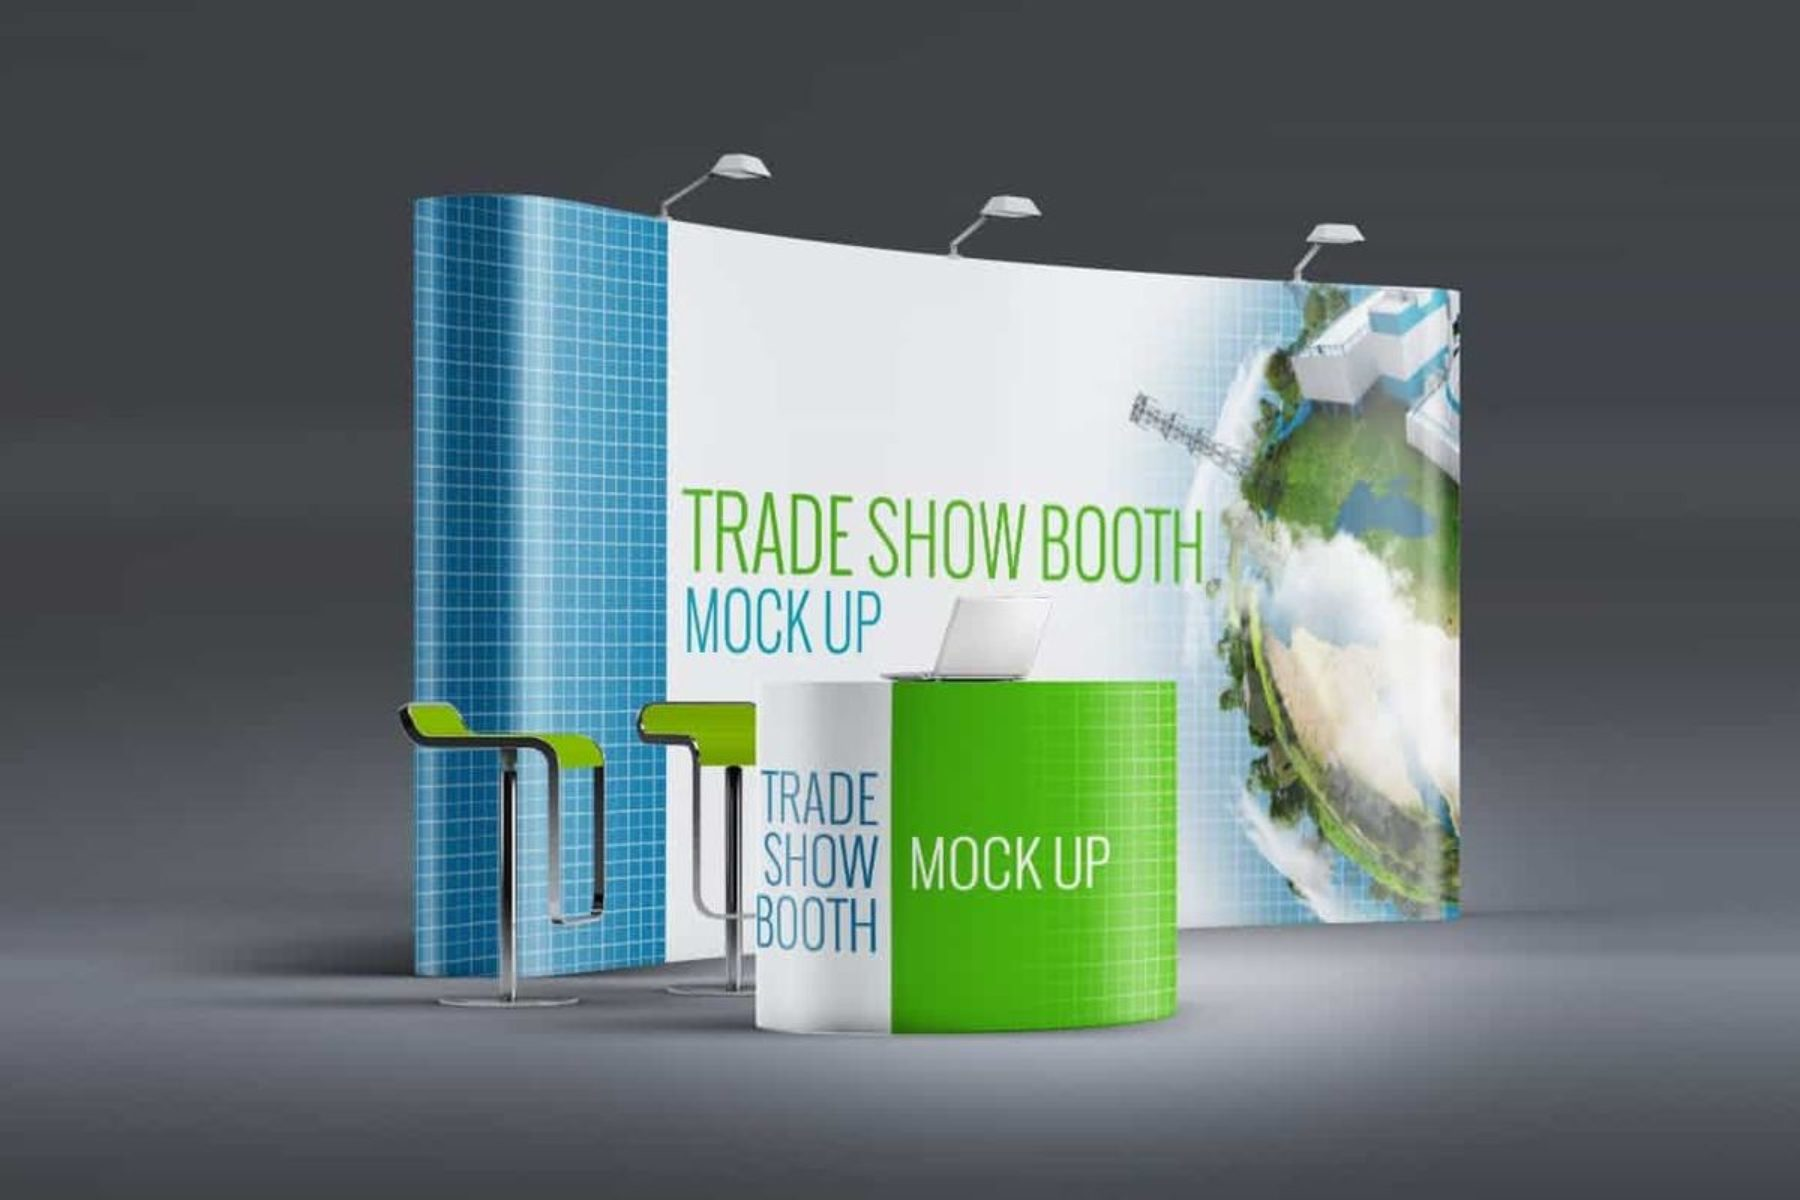 Custom Trade Show Promotional Banners and Ad